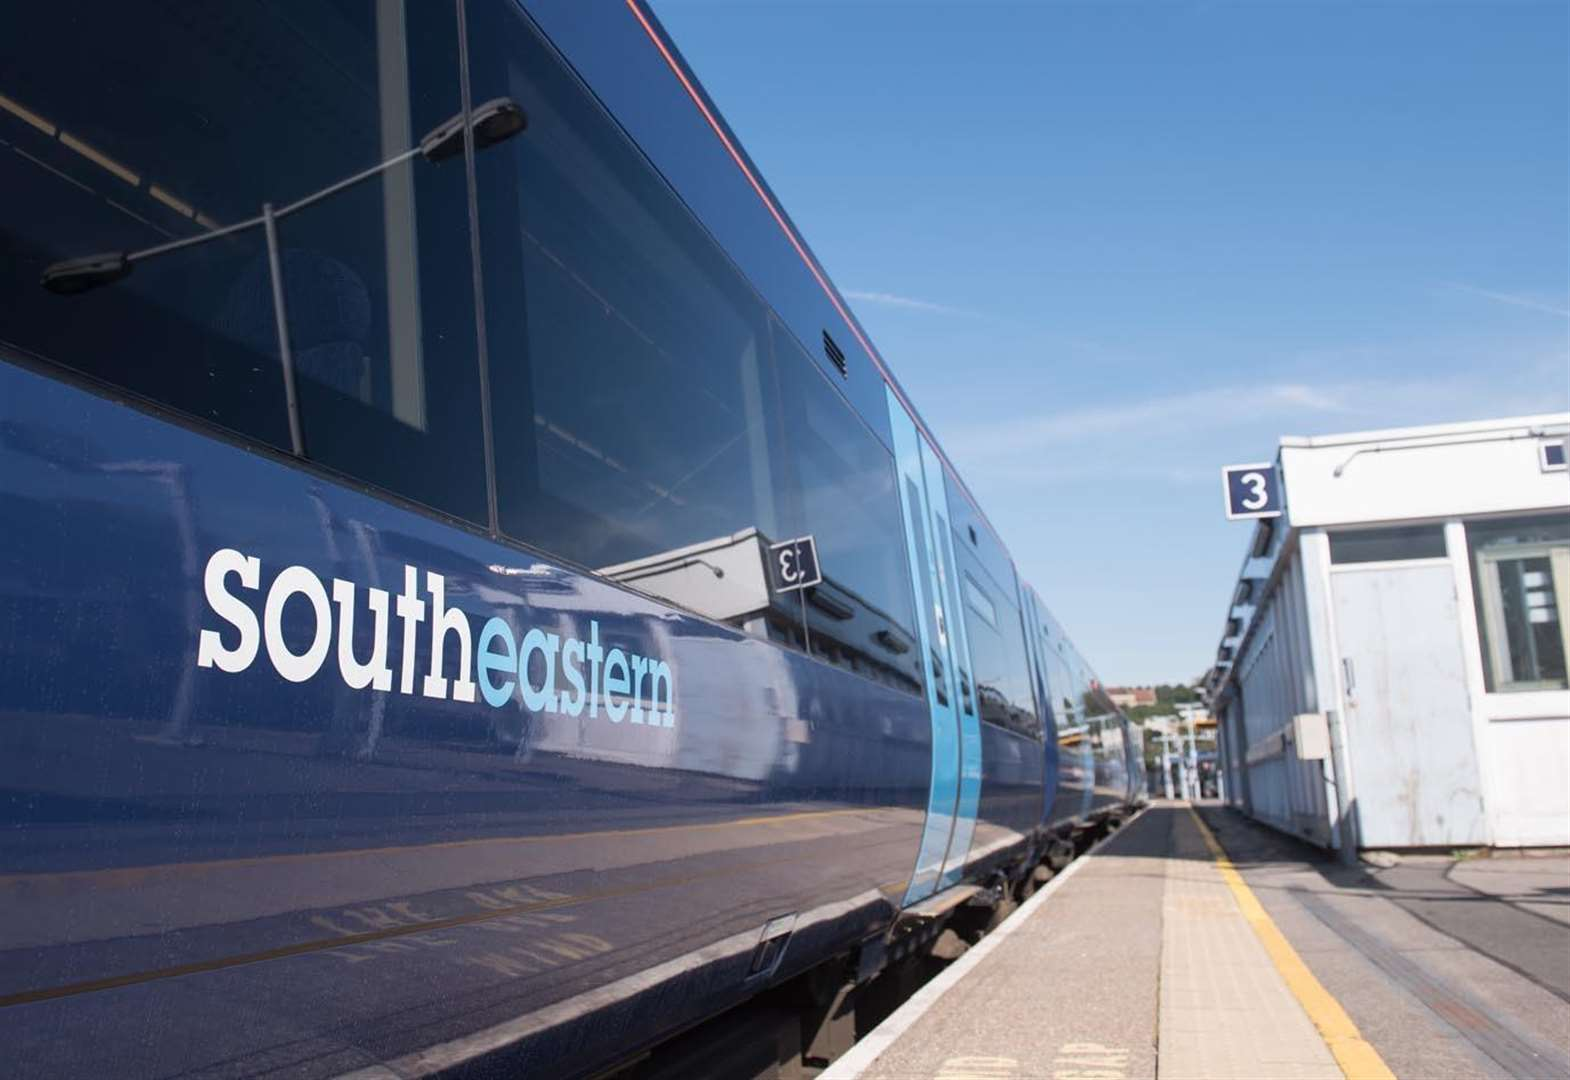 Commuter delays after train breaks down